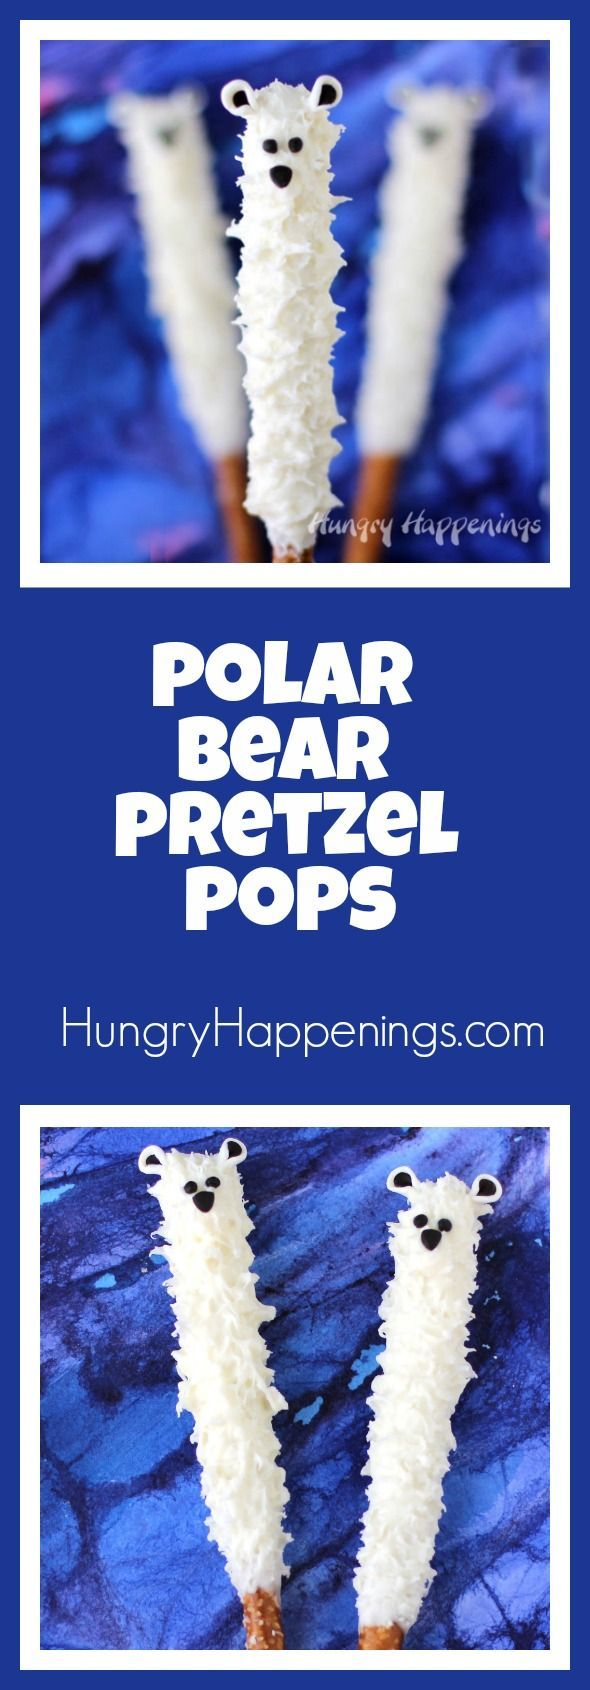 Whether you have kids, or you're a kid at heart, you'll have a great time this winter making White Chocolate Polar Bear Pretzel Pops. They are an irresistible sweet and salty treat that are perfect for the holiday season.